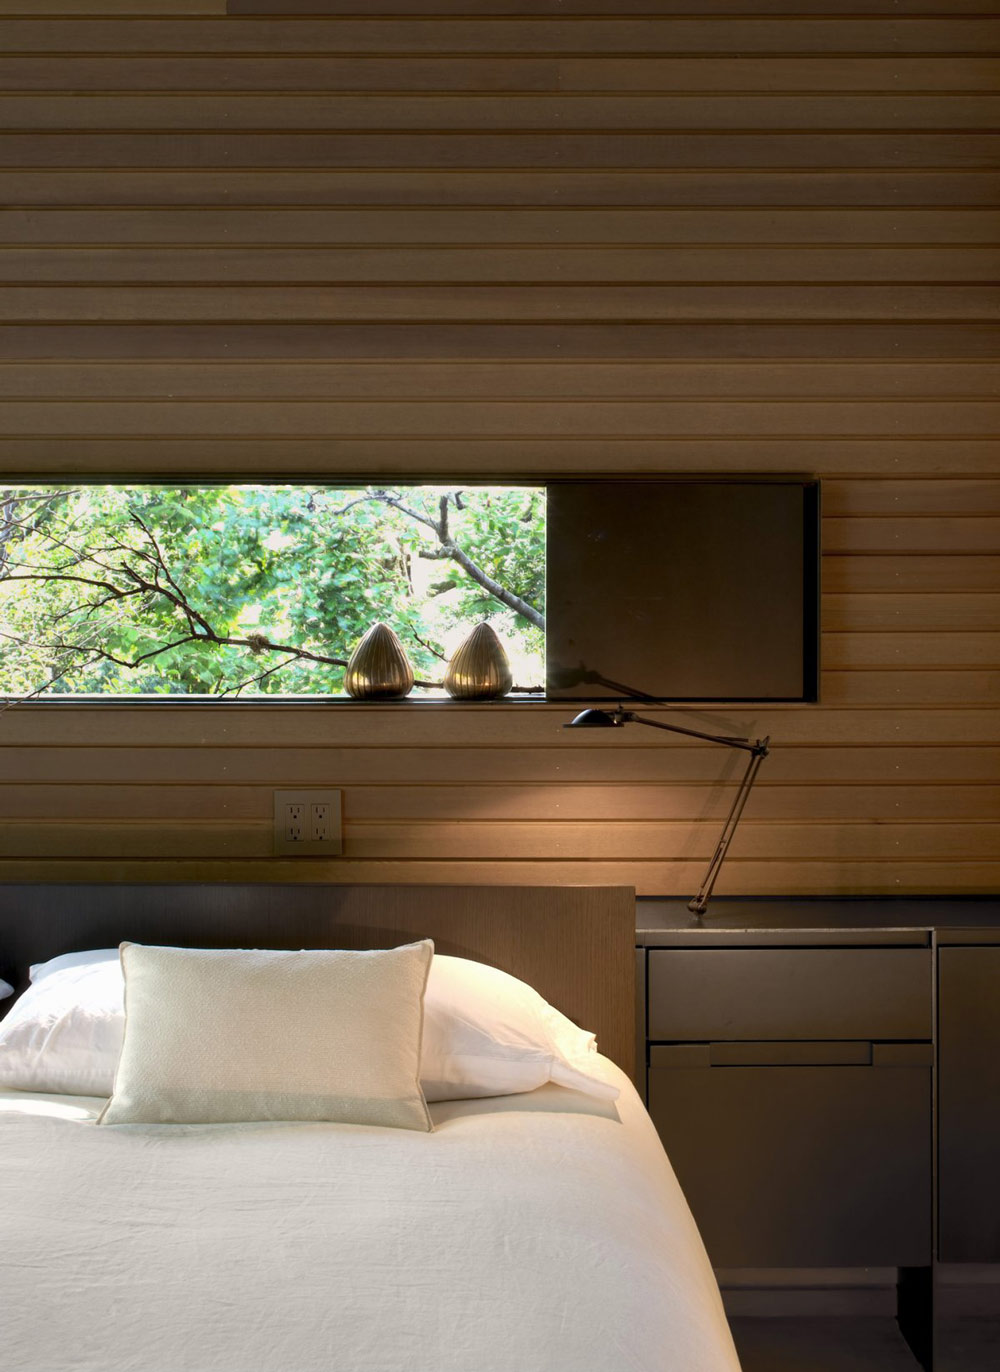 Bedroom, Urban Cabin in Medina, Washington by Suyama Peterson Deguchi